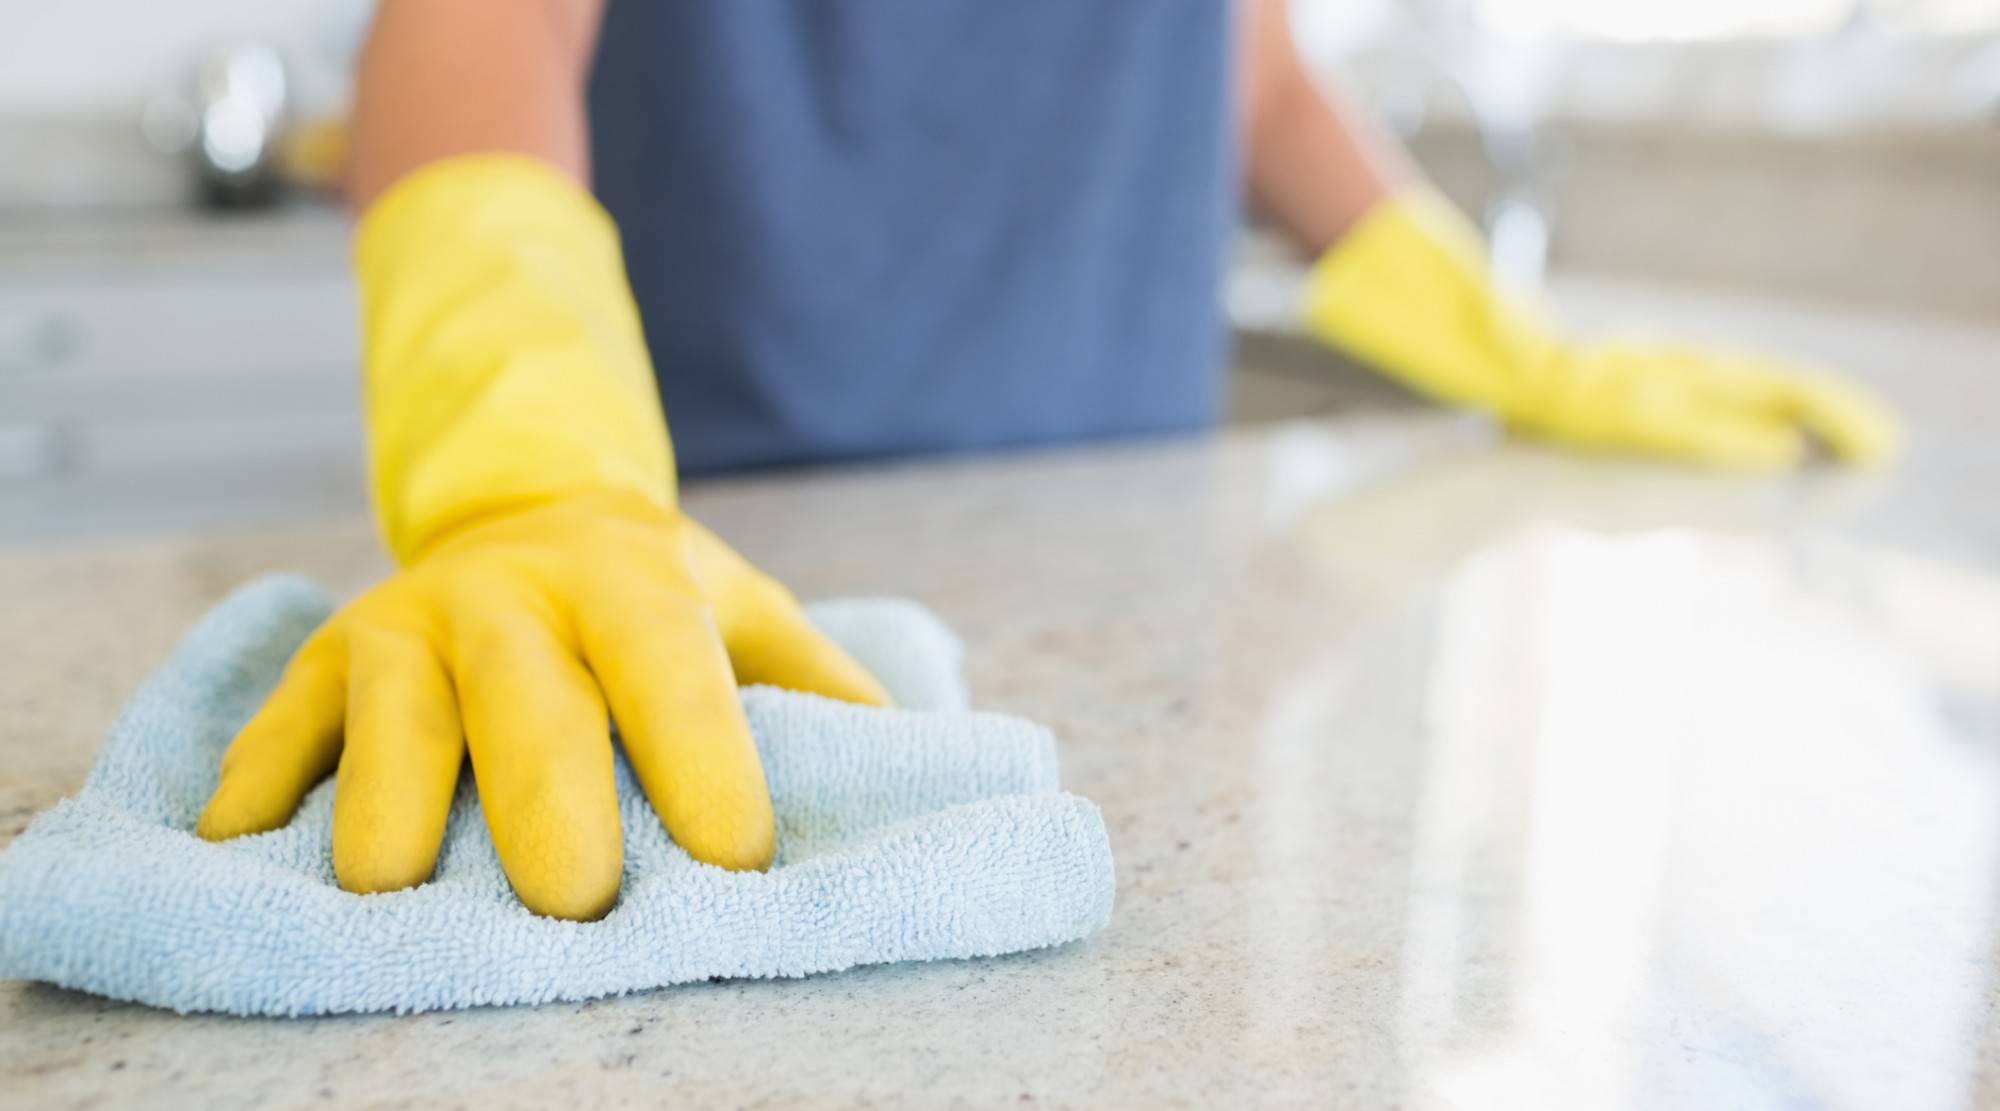 How to Keep Your Home Clean and Virus-free